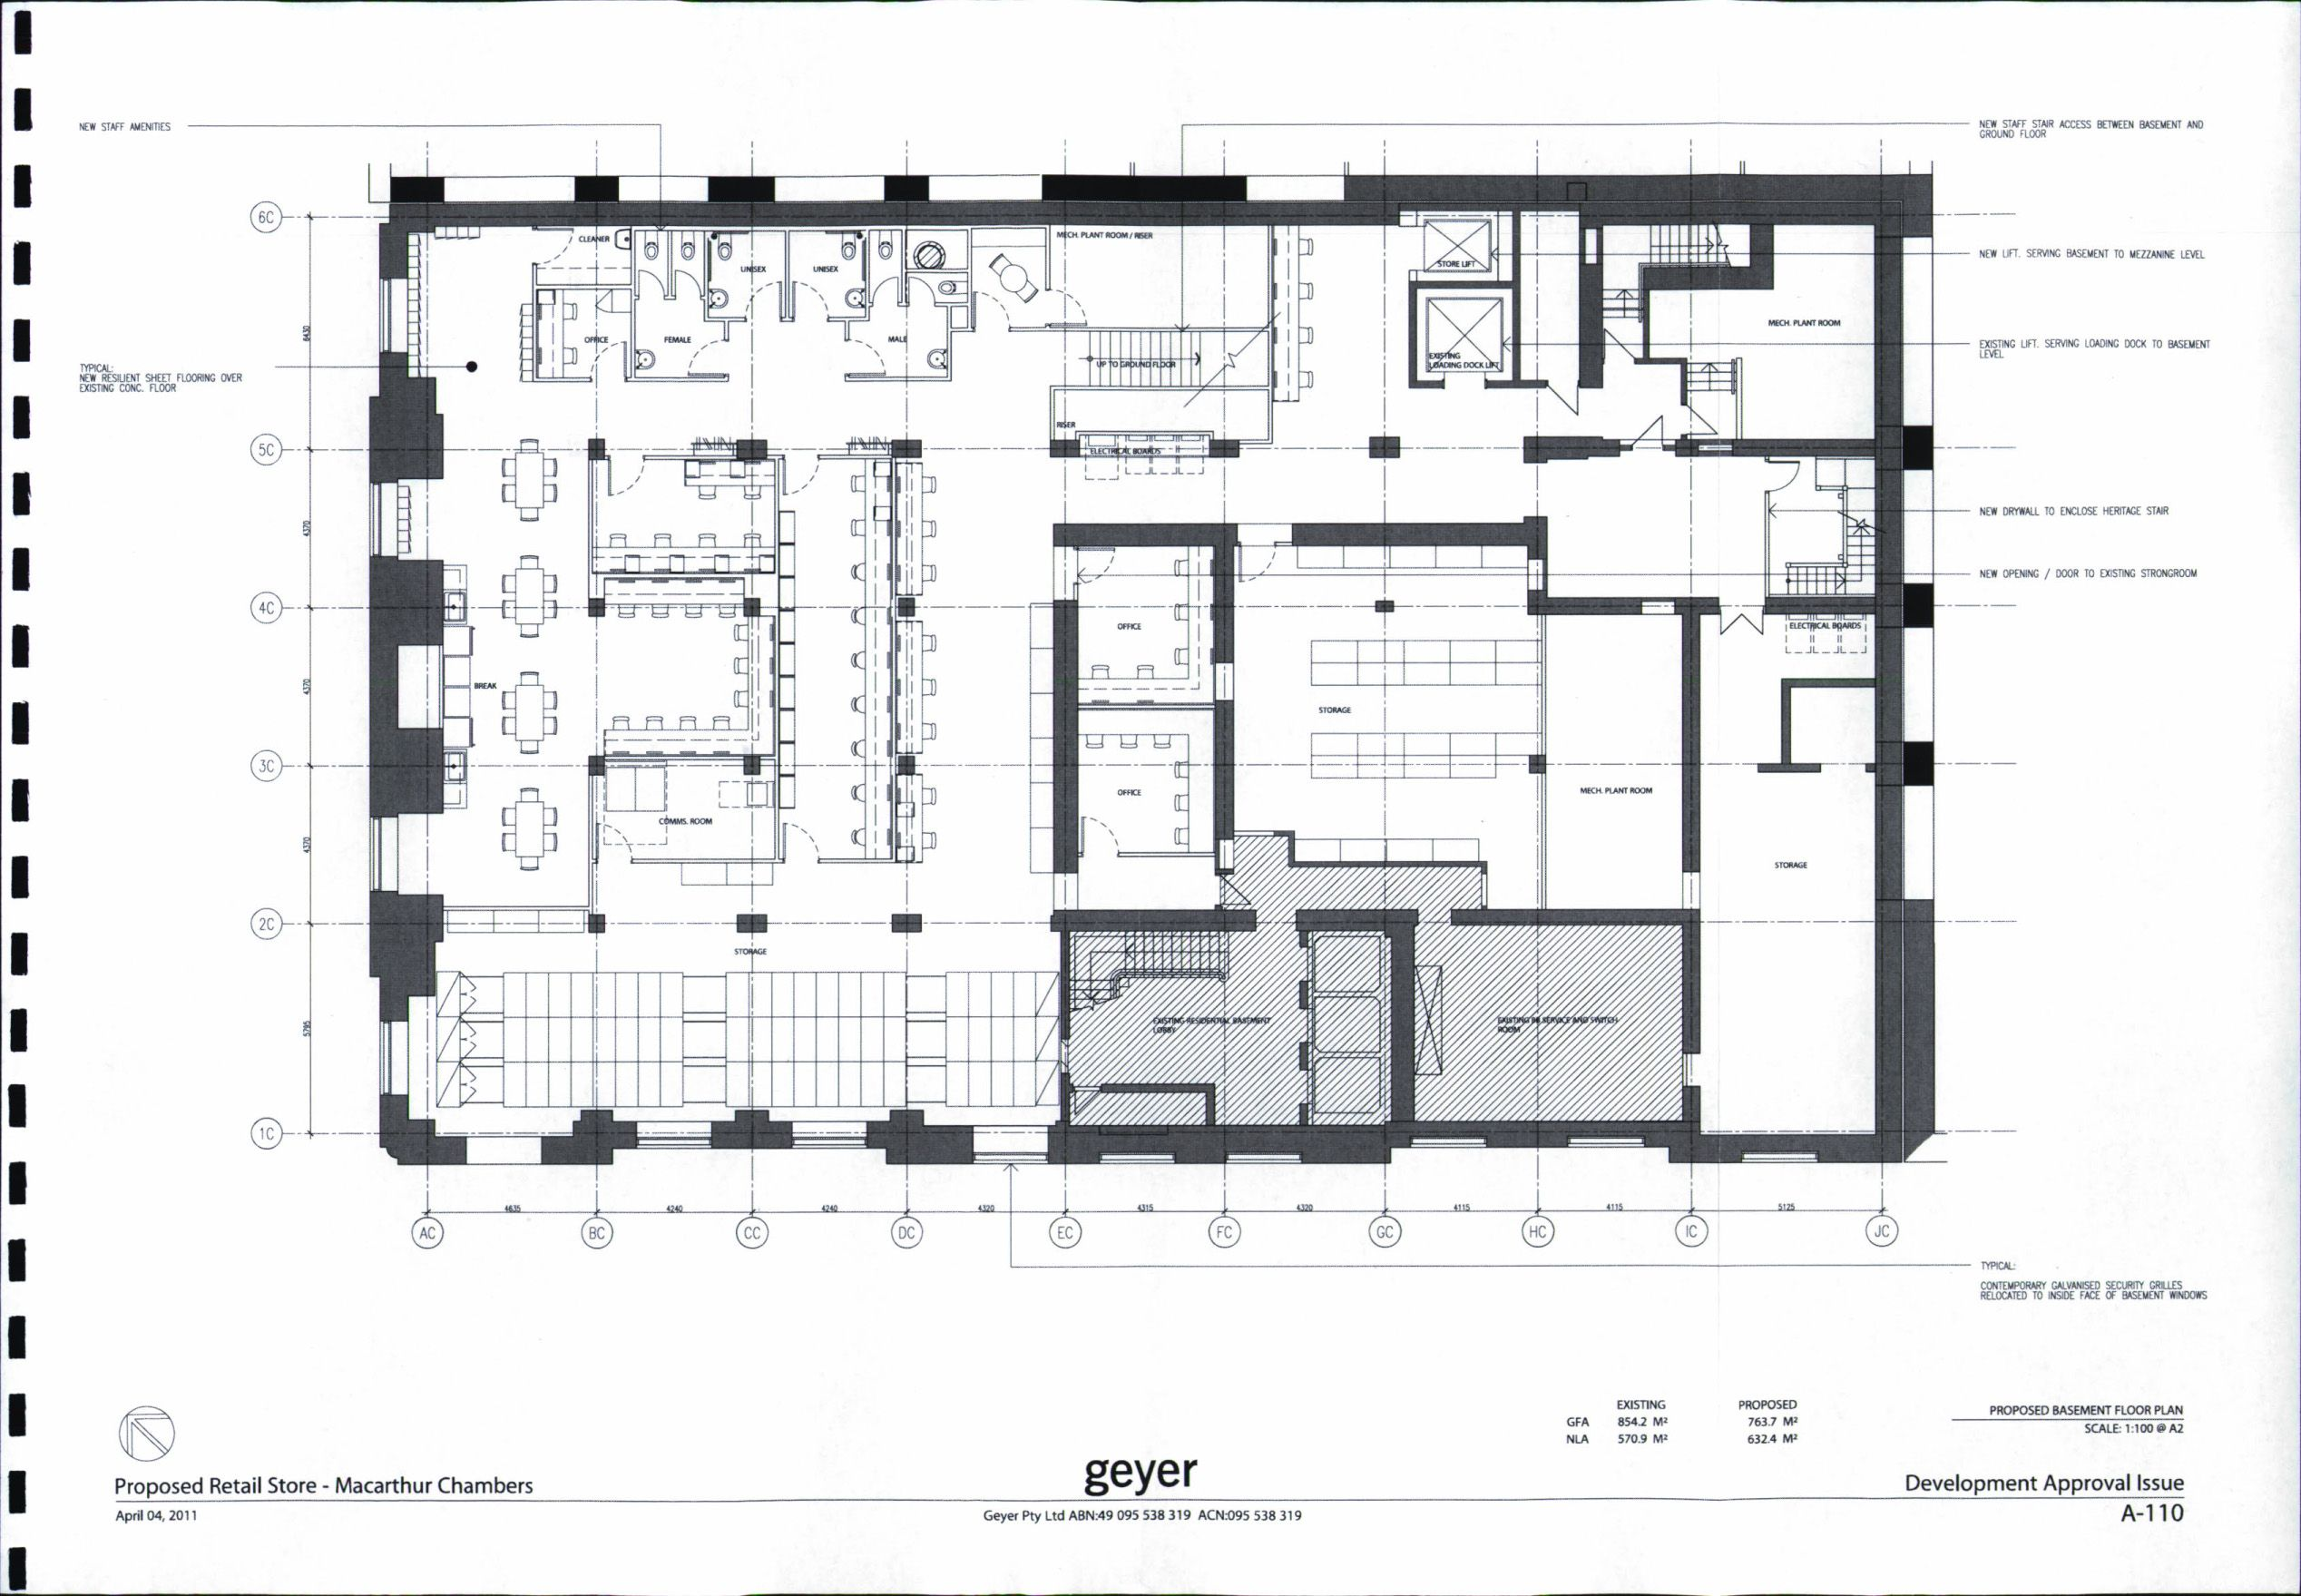 Apple Store Floor Plan Applestorearchitectureretail: floor plan mac